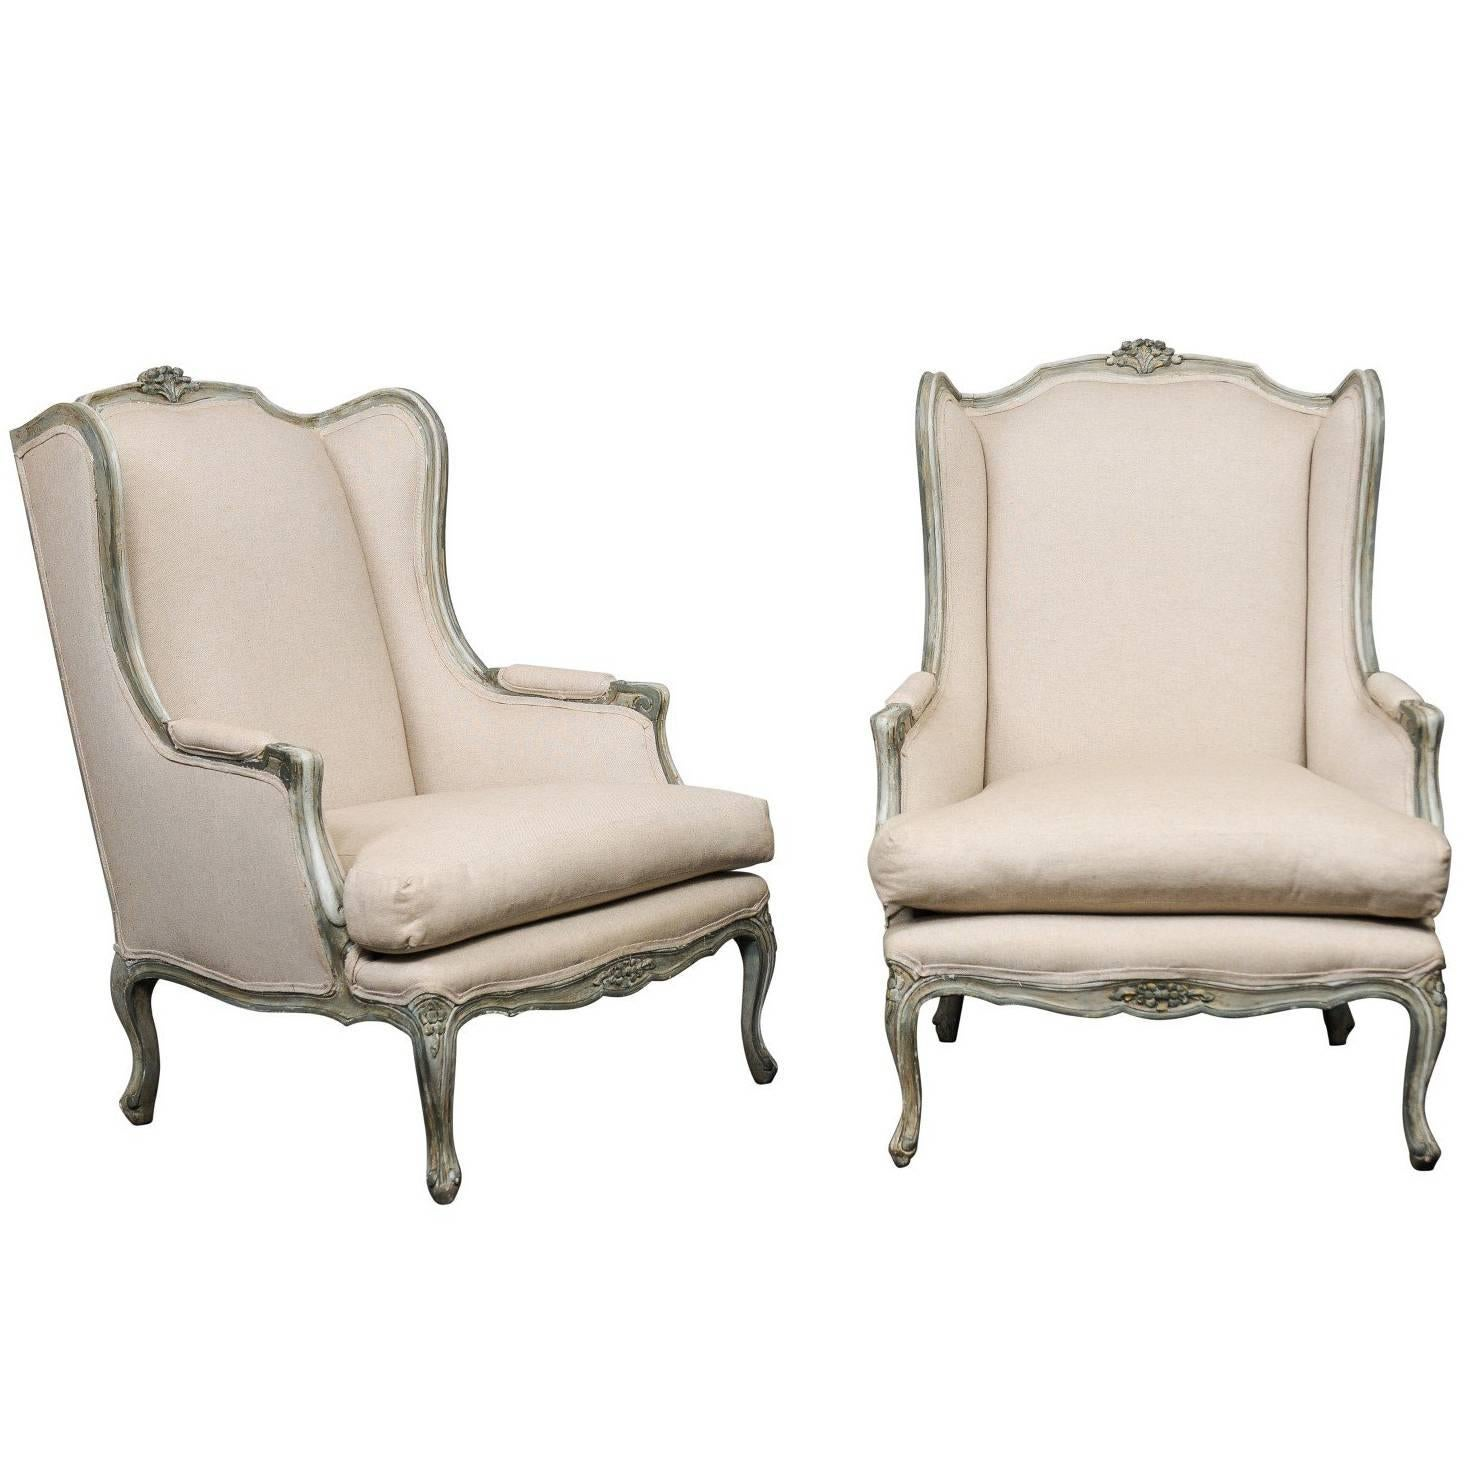 Pair Of Mid 20th Century French Carved Wood And Upholstered Wingback Chairs  1